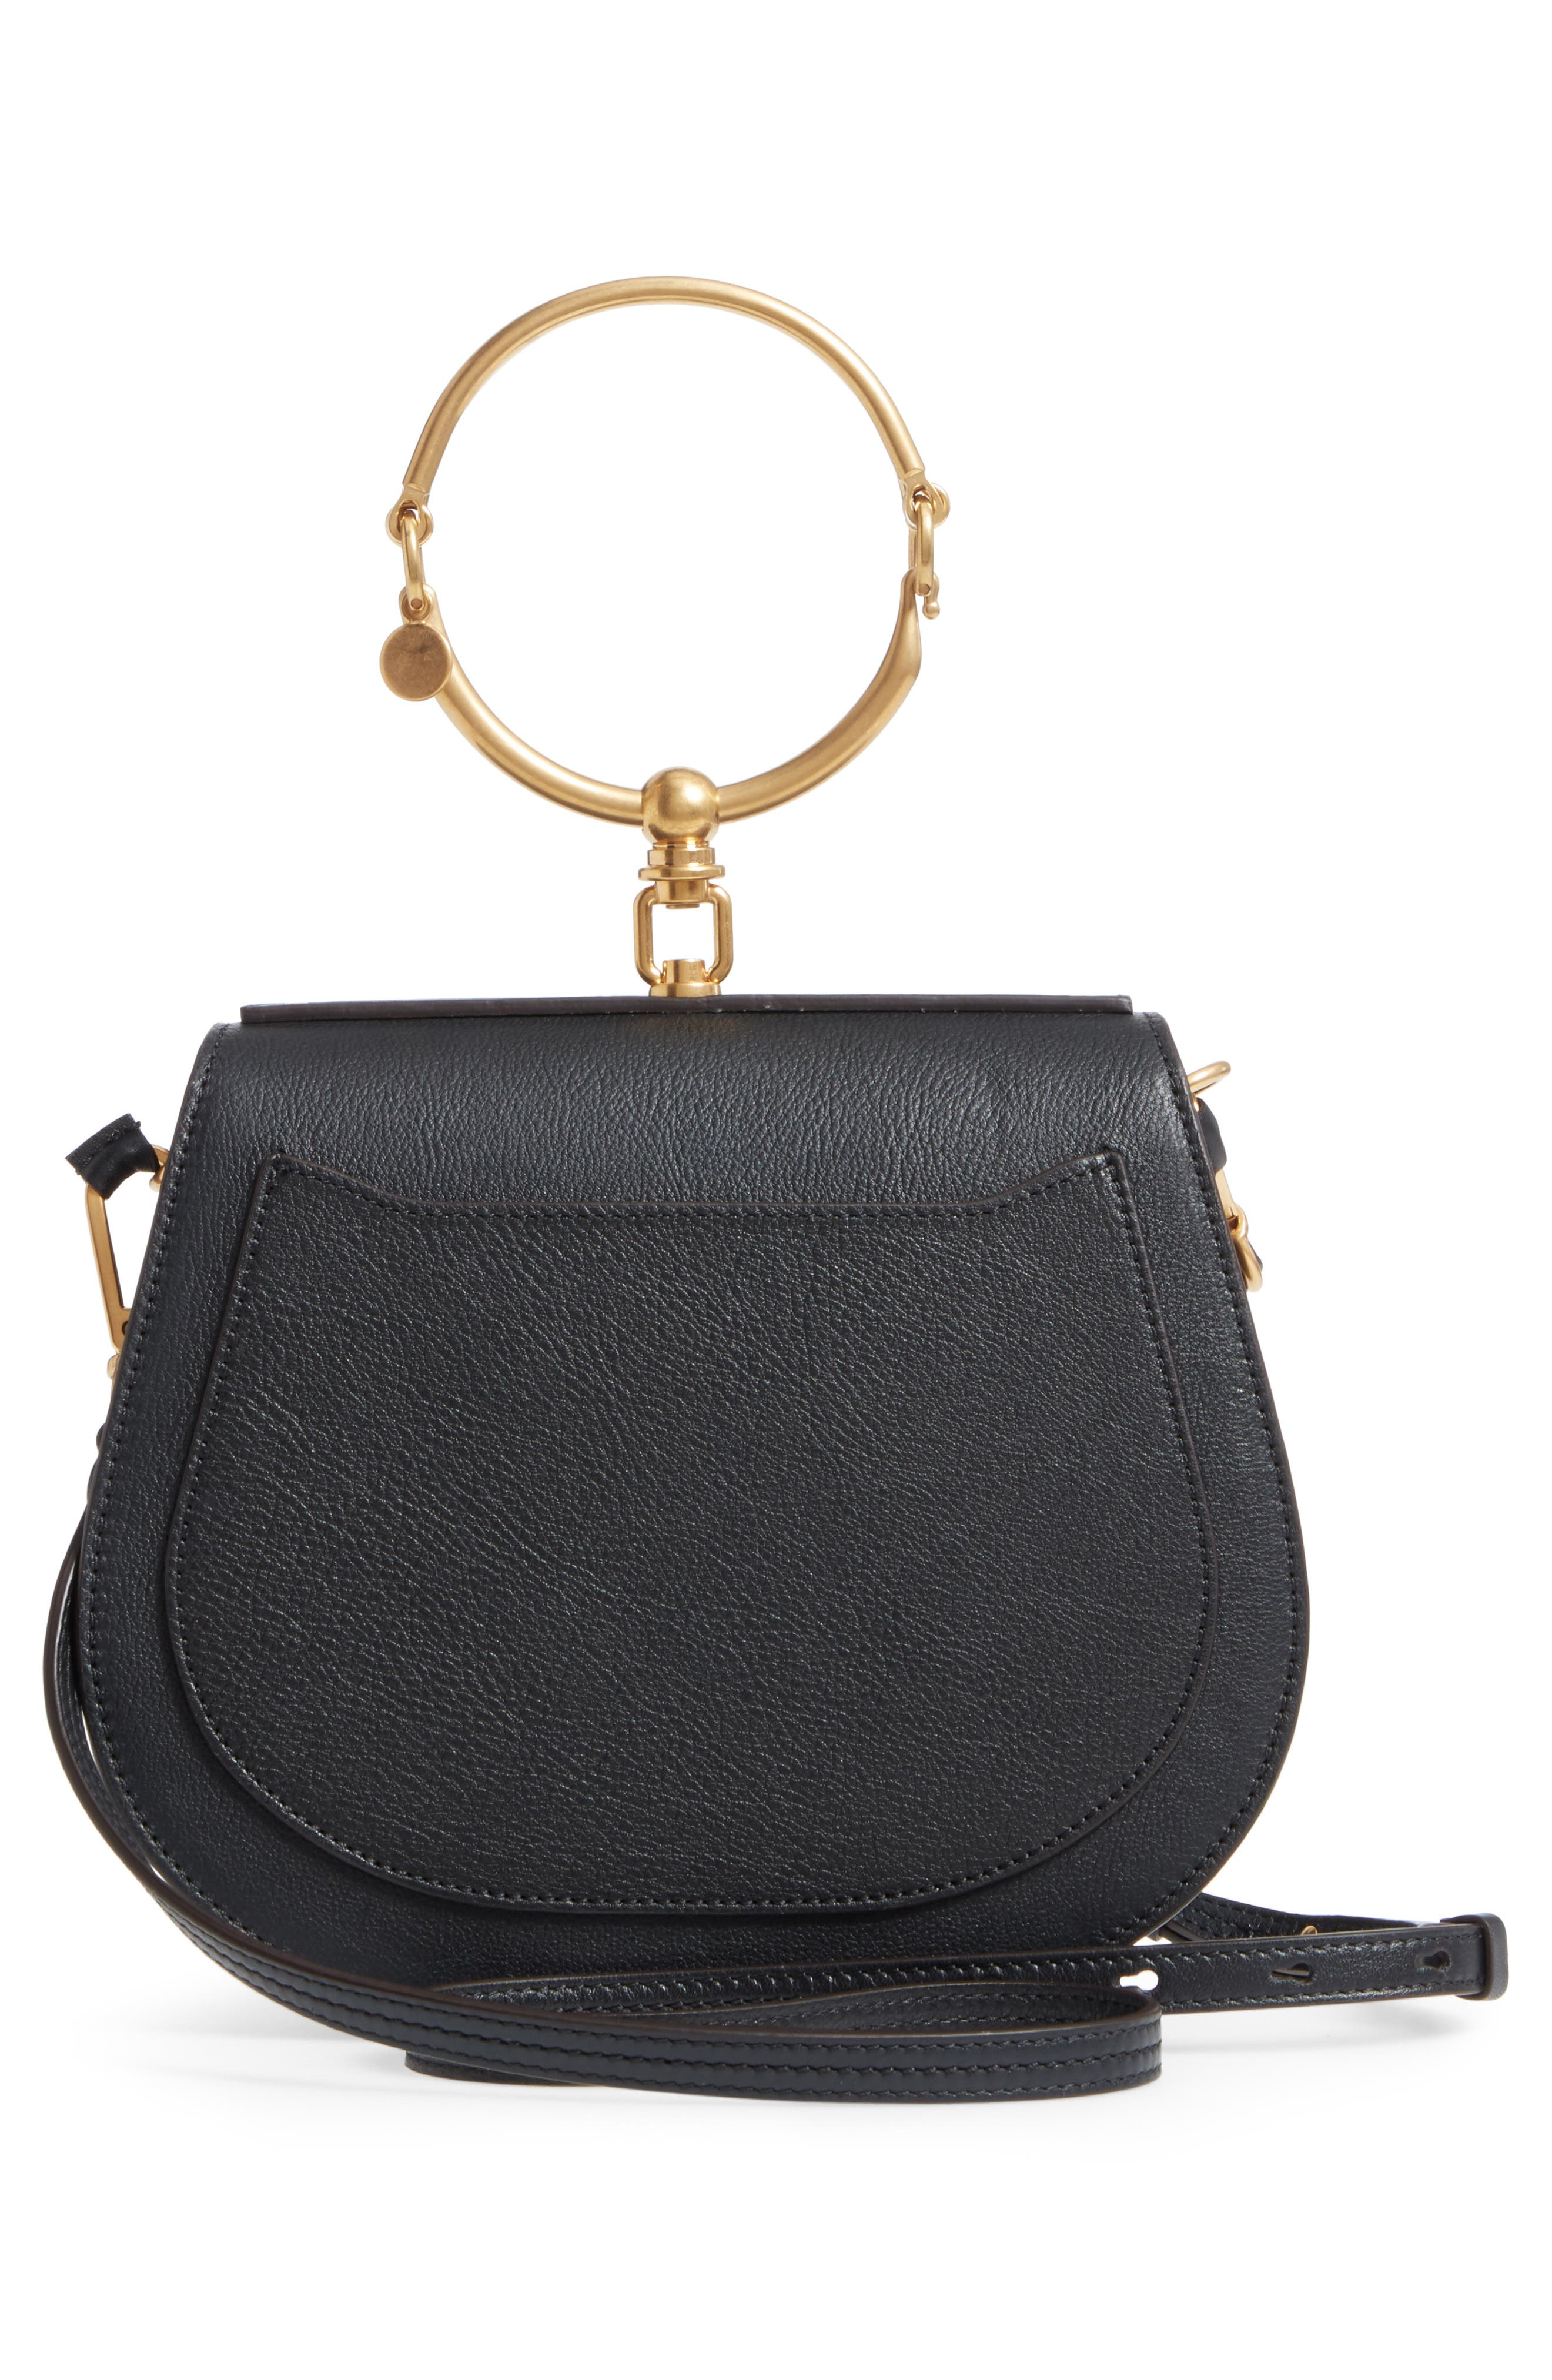 Medium Nile Leather Bracelet Saddle Bag,                             Alternate thumbnail 4, color,                             001NR001 BLACK